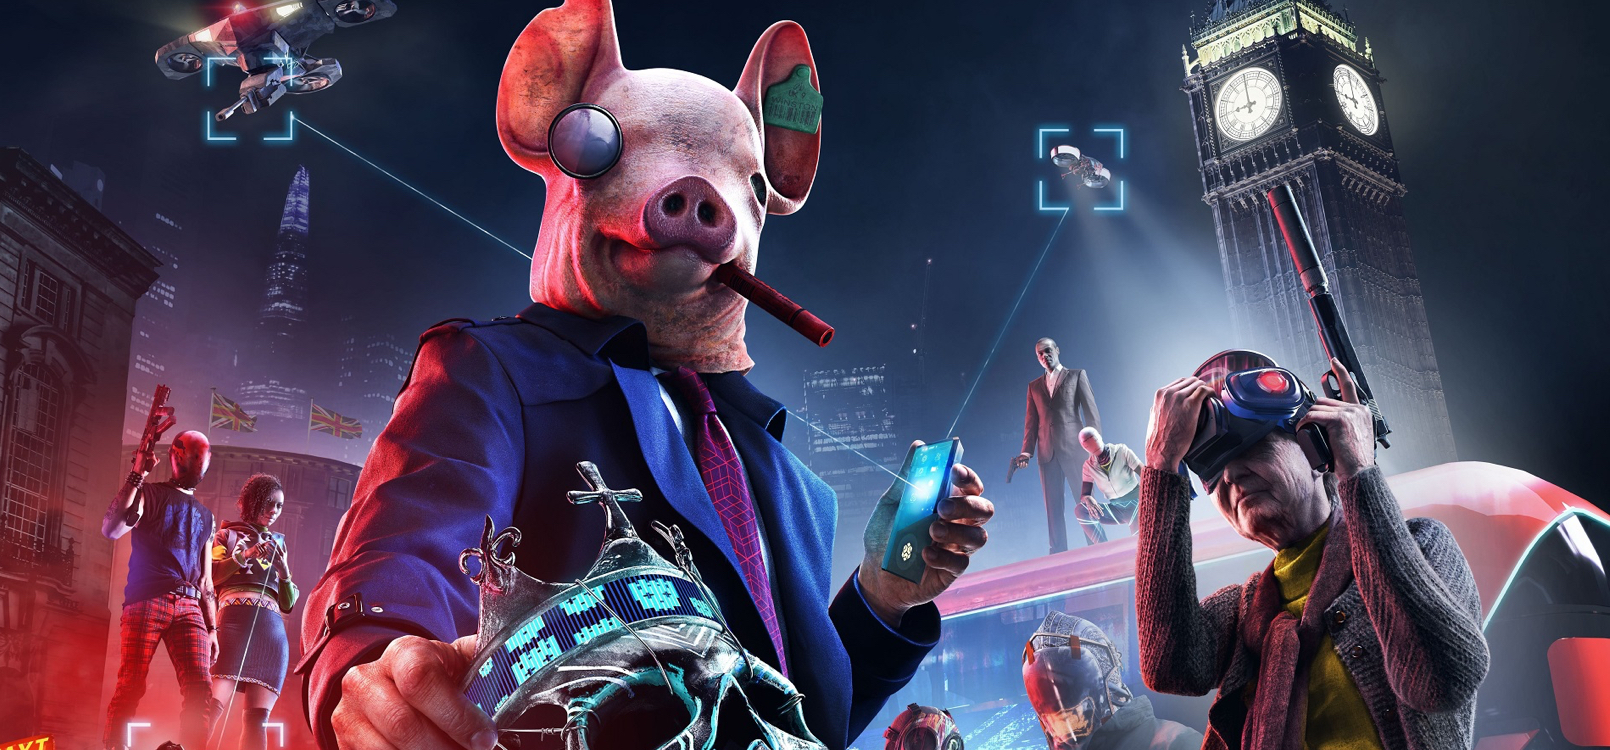 COVER IMAGE 1610x750 Watch Dogs Legion